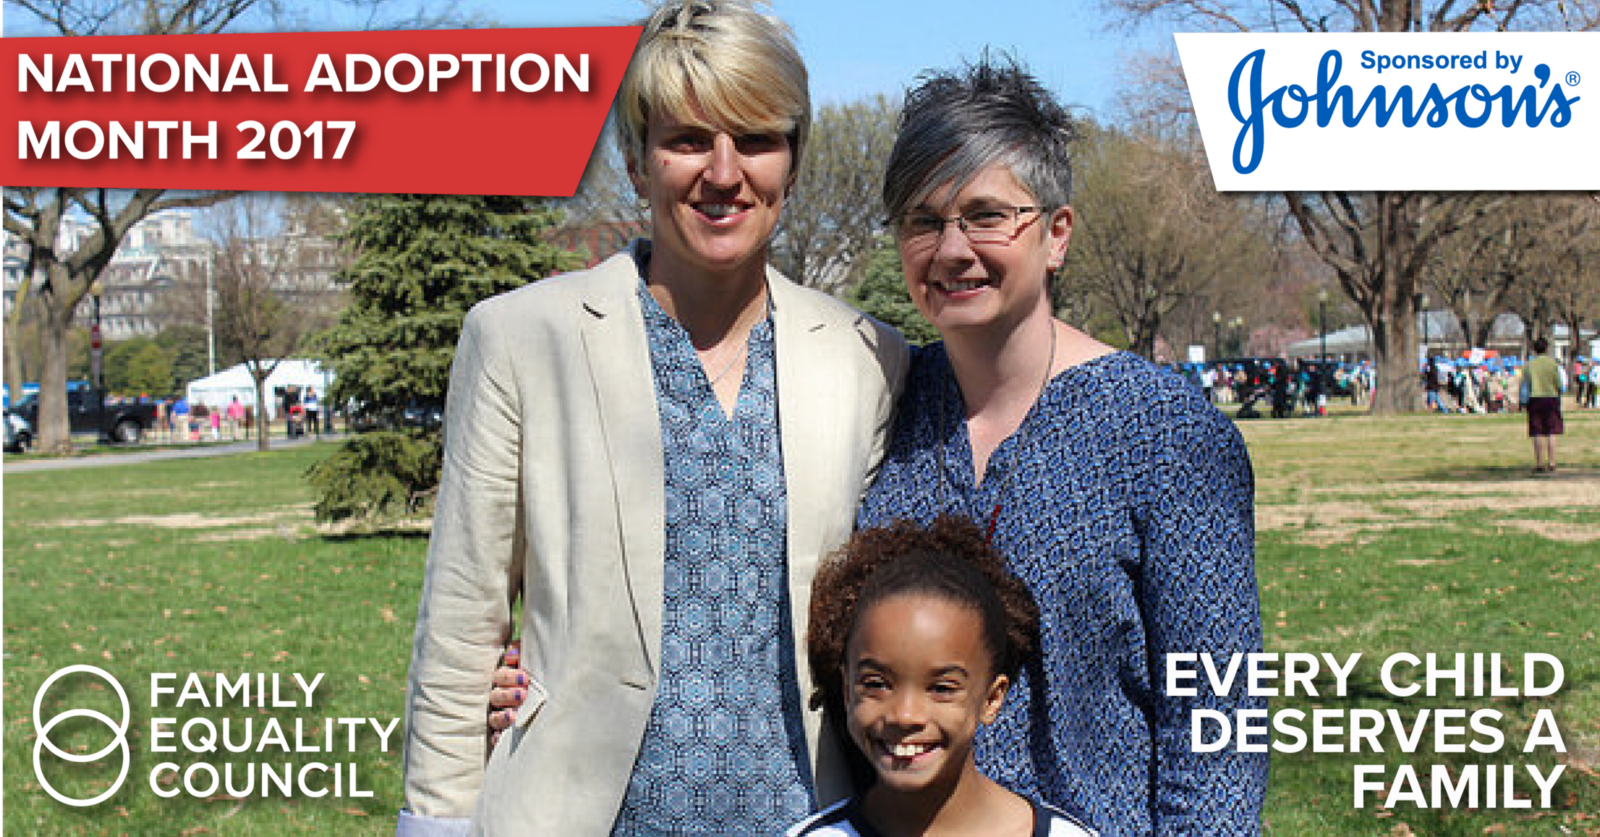 Our Adoption Journey- Overcoming Obstacles in Alabama